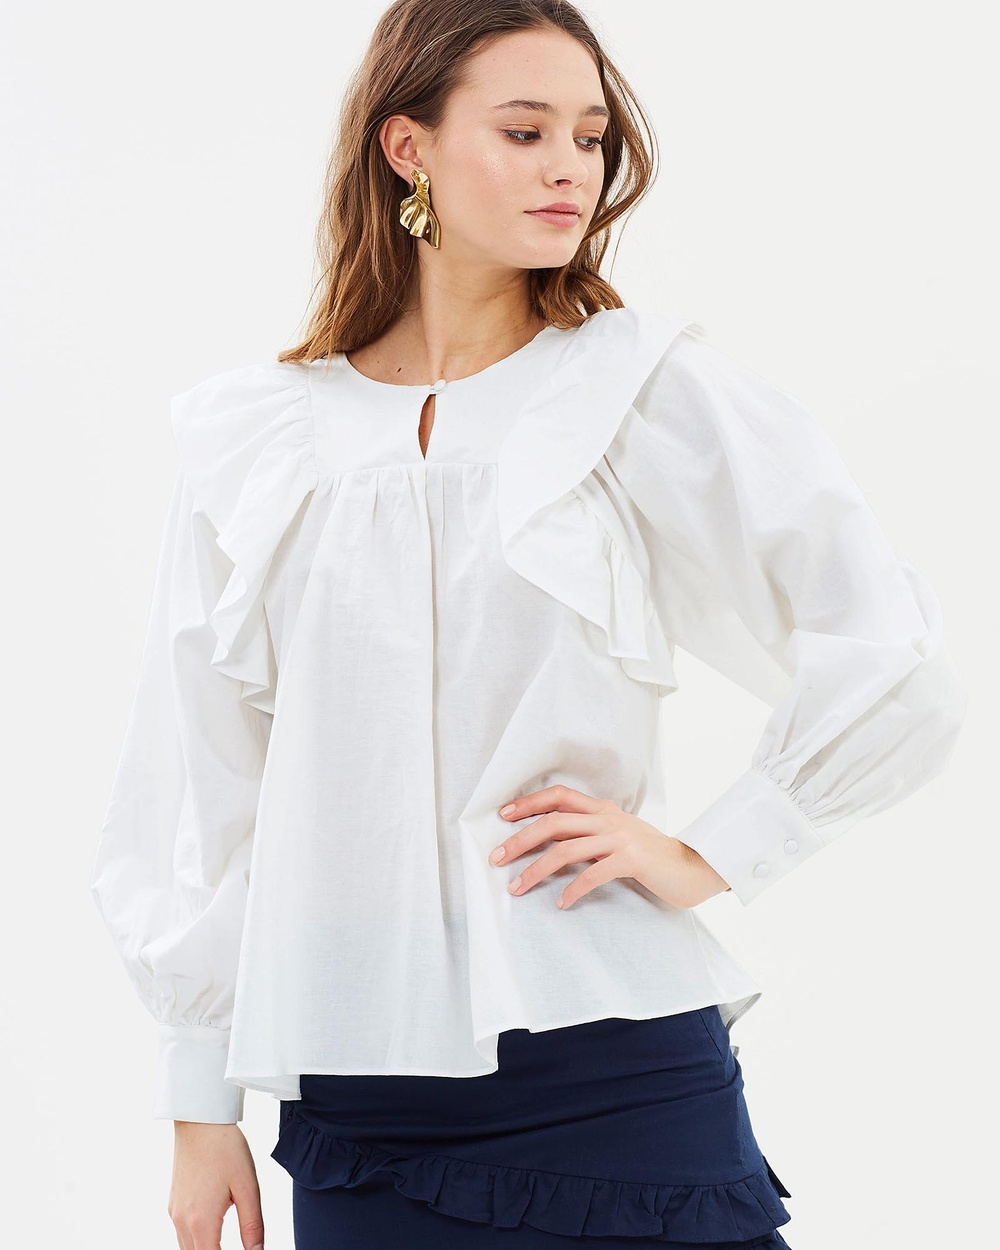 IMONNI Marian Cotton Linen Top Tops White Marian Cotton-Linen Top